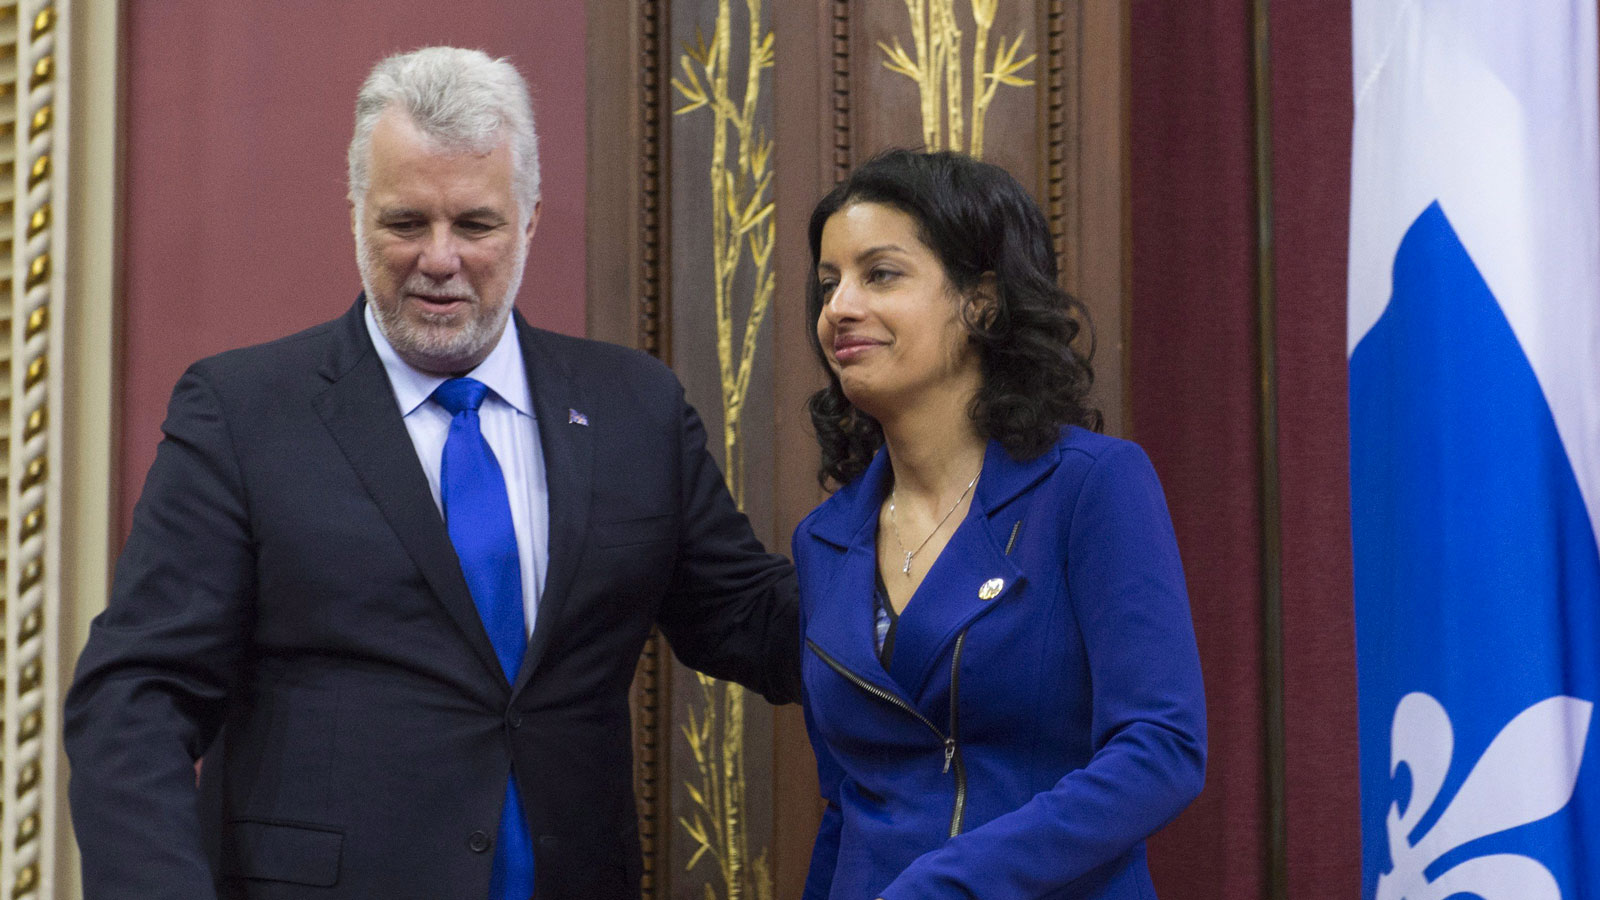 Philippe Couillard et Dominique Anglade. (Photo: Jacques Boissinot/La Presse Canadienne)